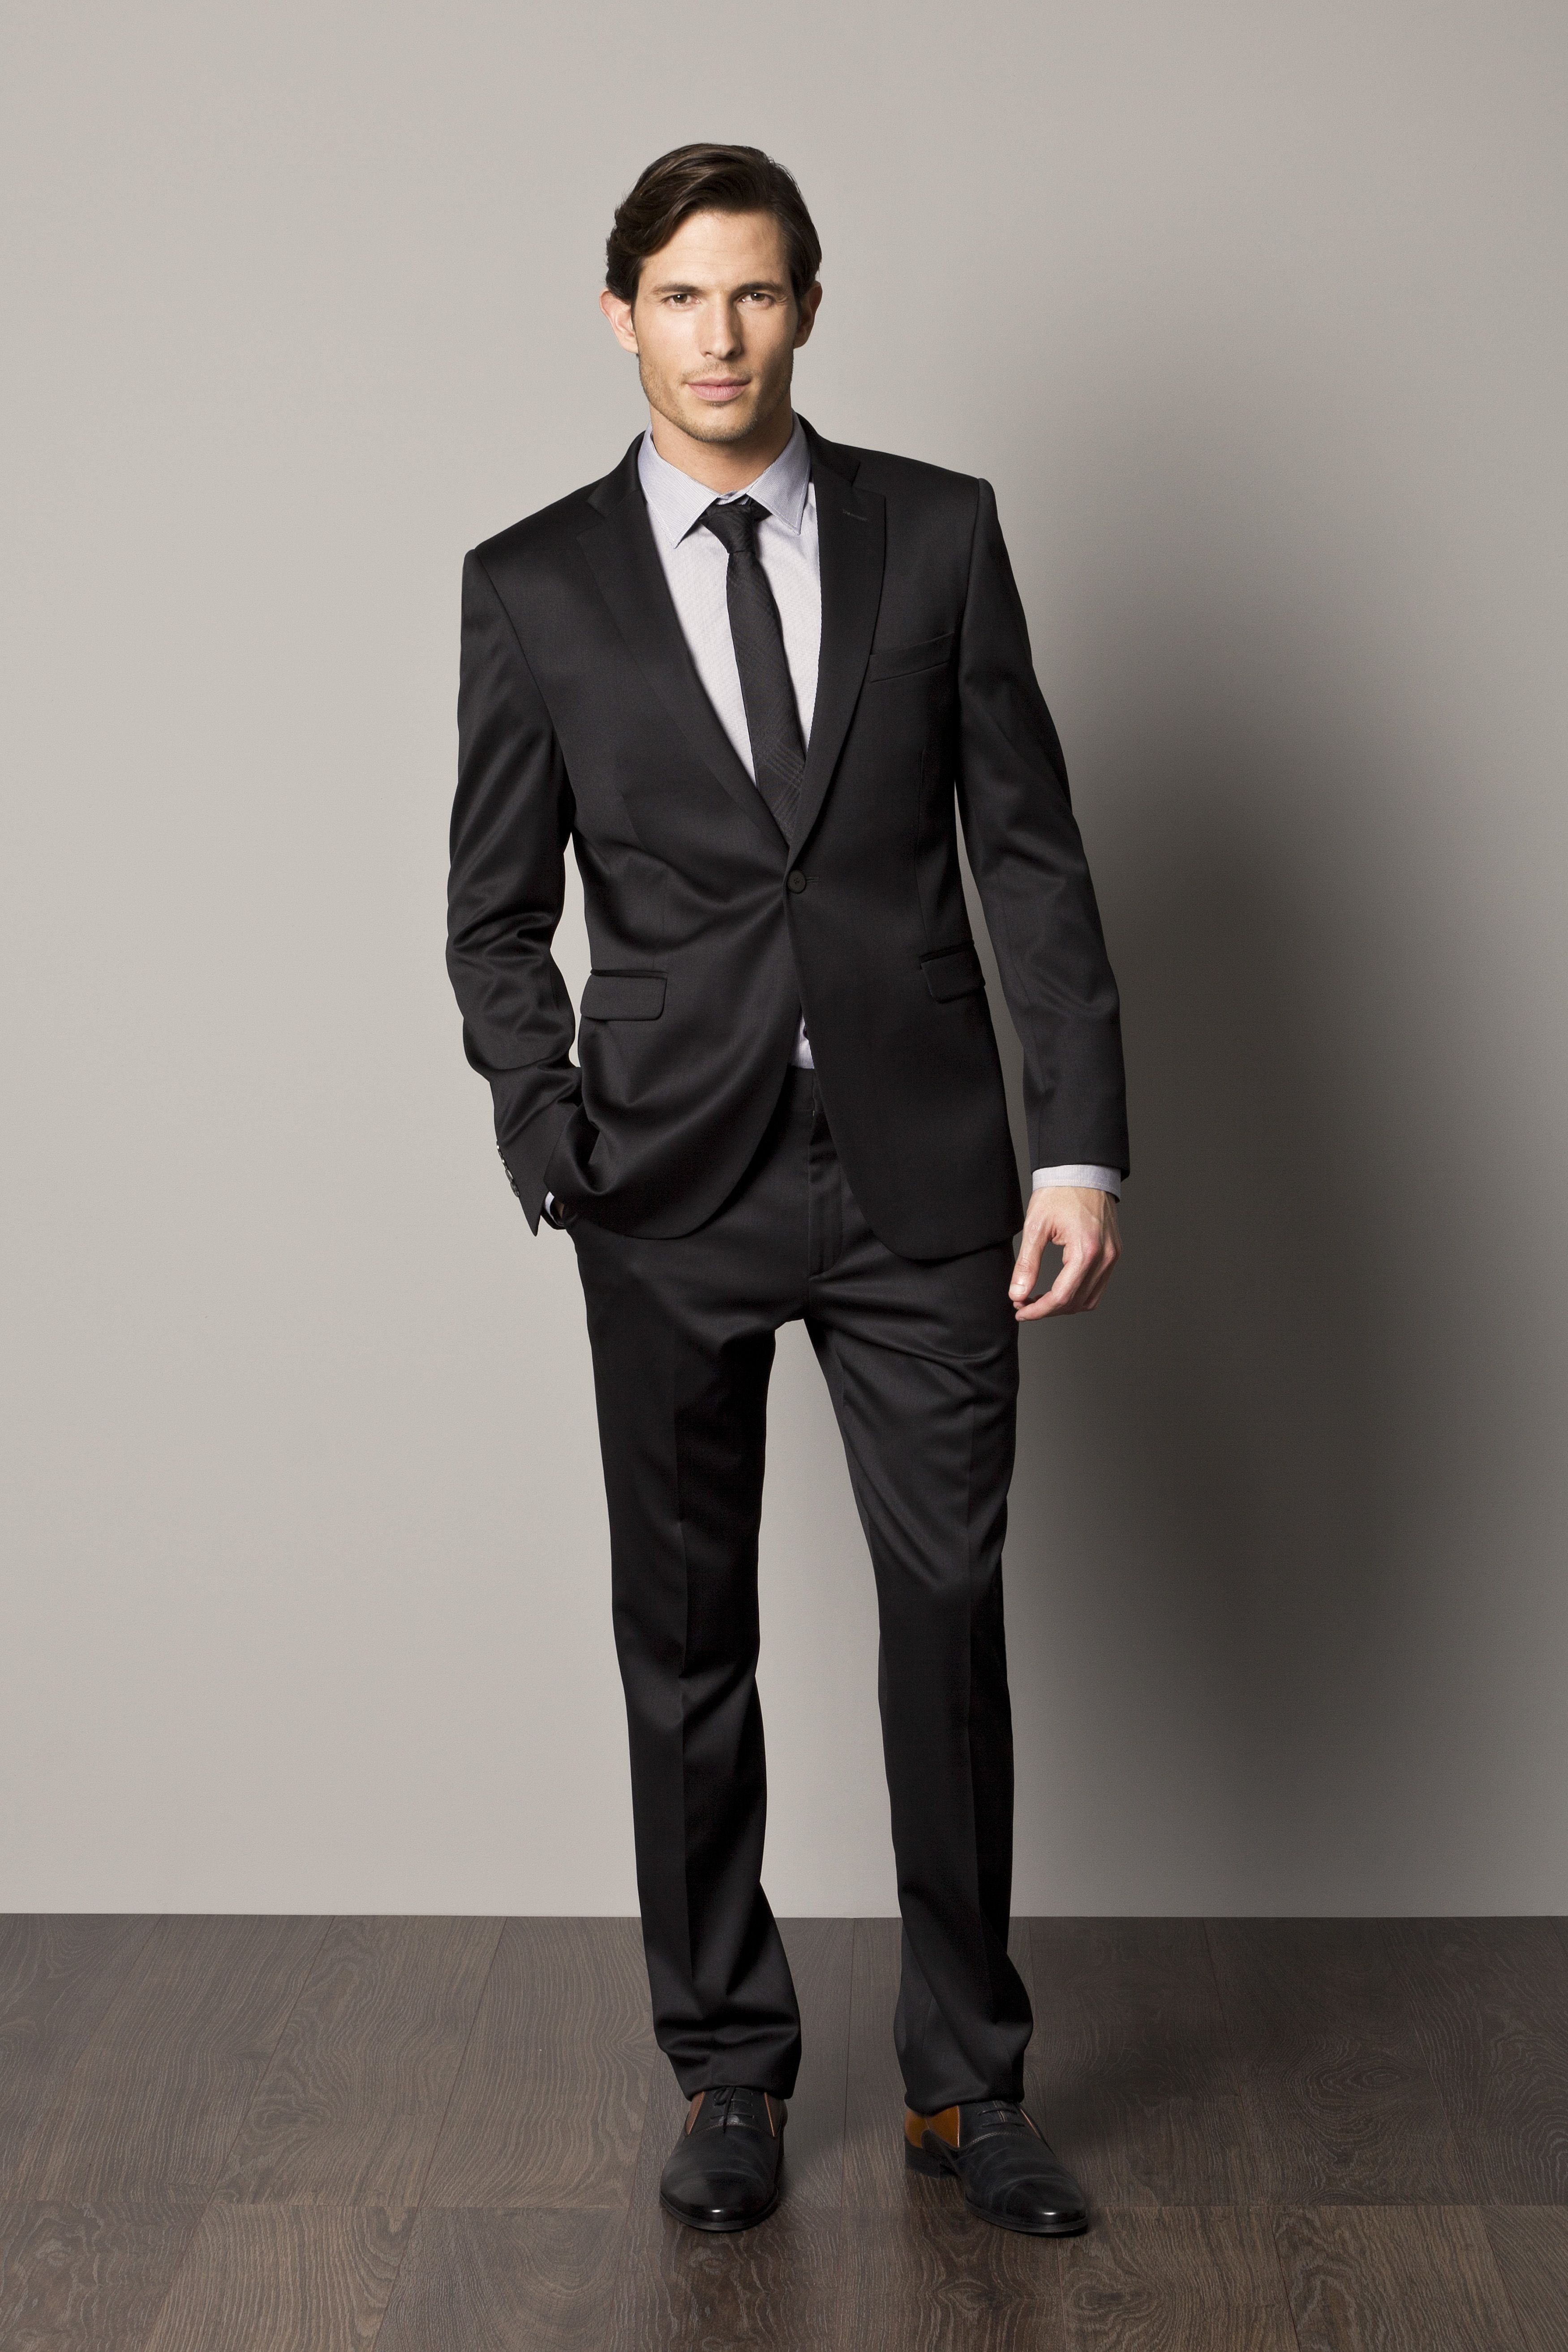 Find great deals on eBay for mens black suit. Shop with confidence. Skip to main content. eBay: Slim Fit Pinstripe Black Men Suit 2 Button Notch Lapel Fitted No Pleat AZAR. Brand New. $ Buy It Now. Free Shipping. 64+ Sold. Tell us what you think - opens in new window or tab.